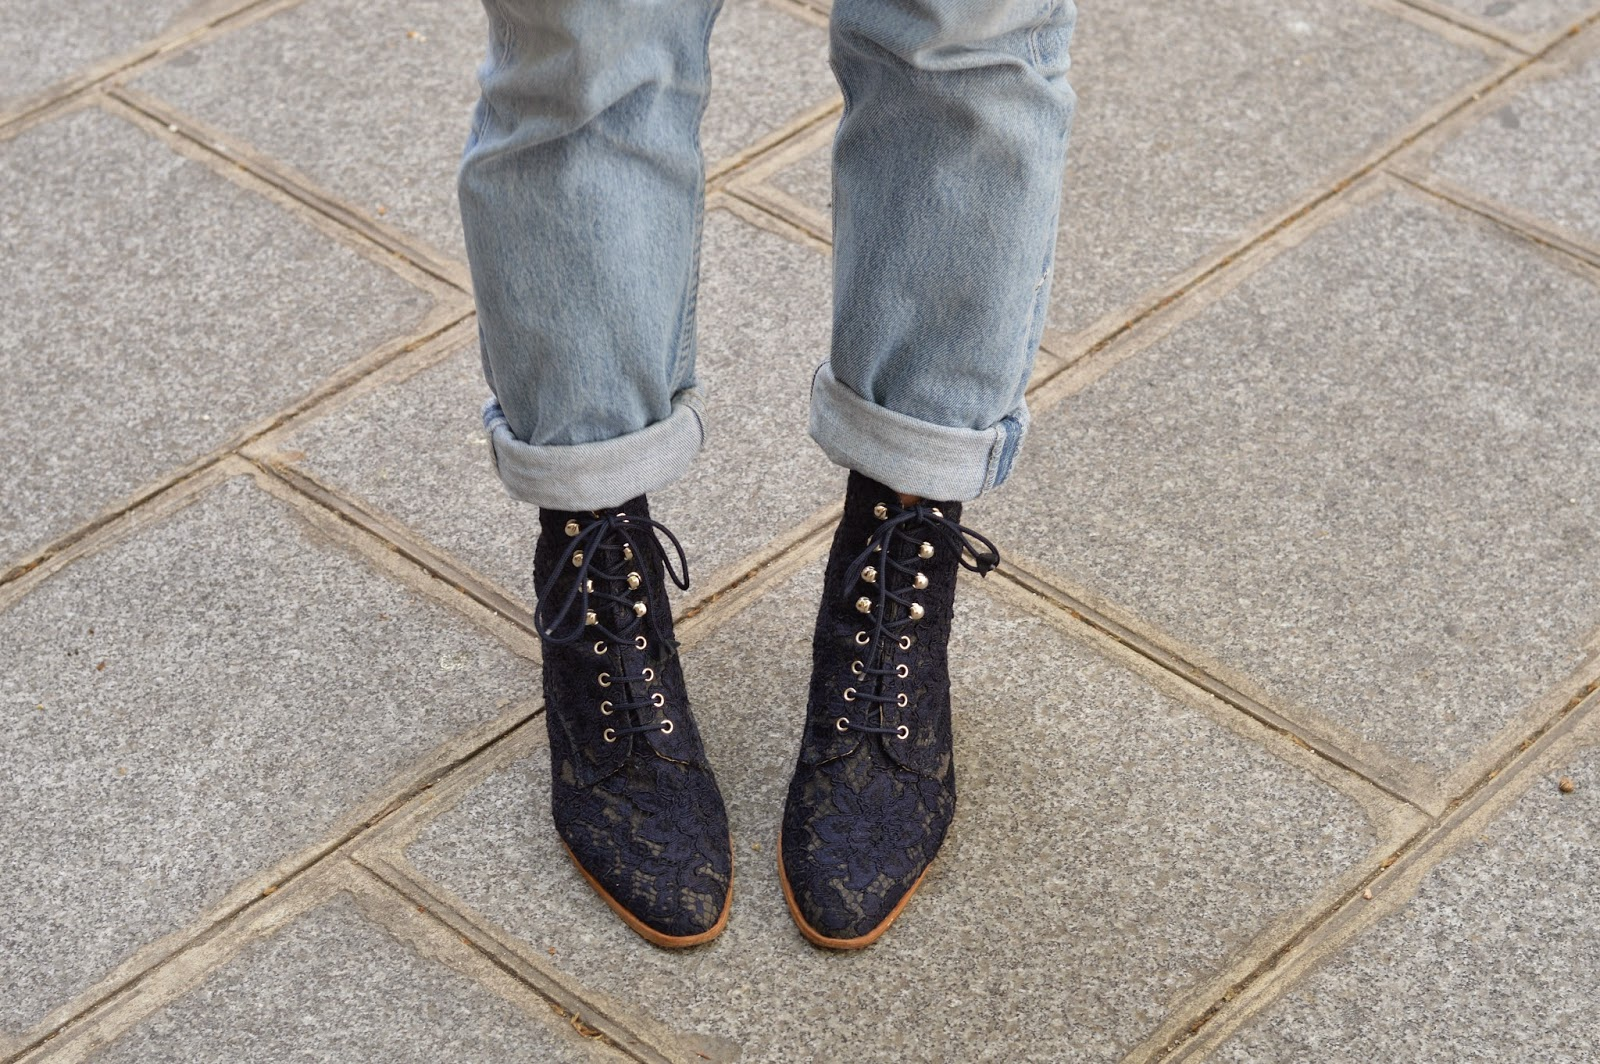 Navy lace vintage boots and 501 levis jeans